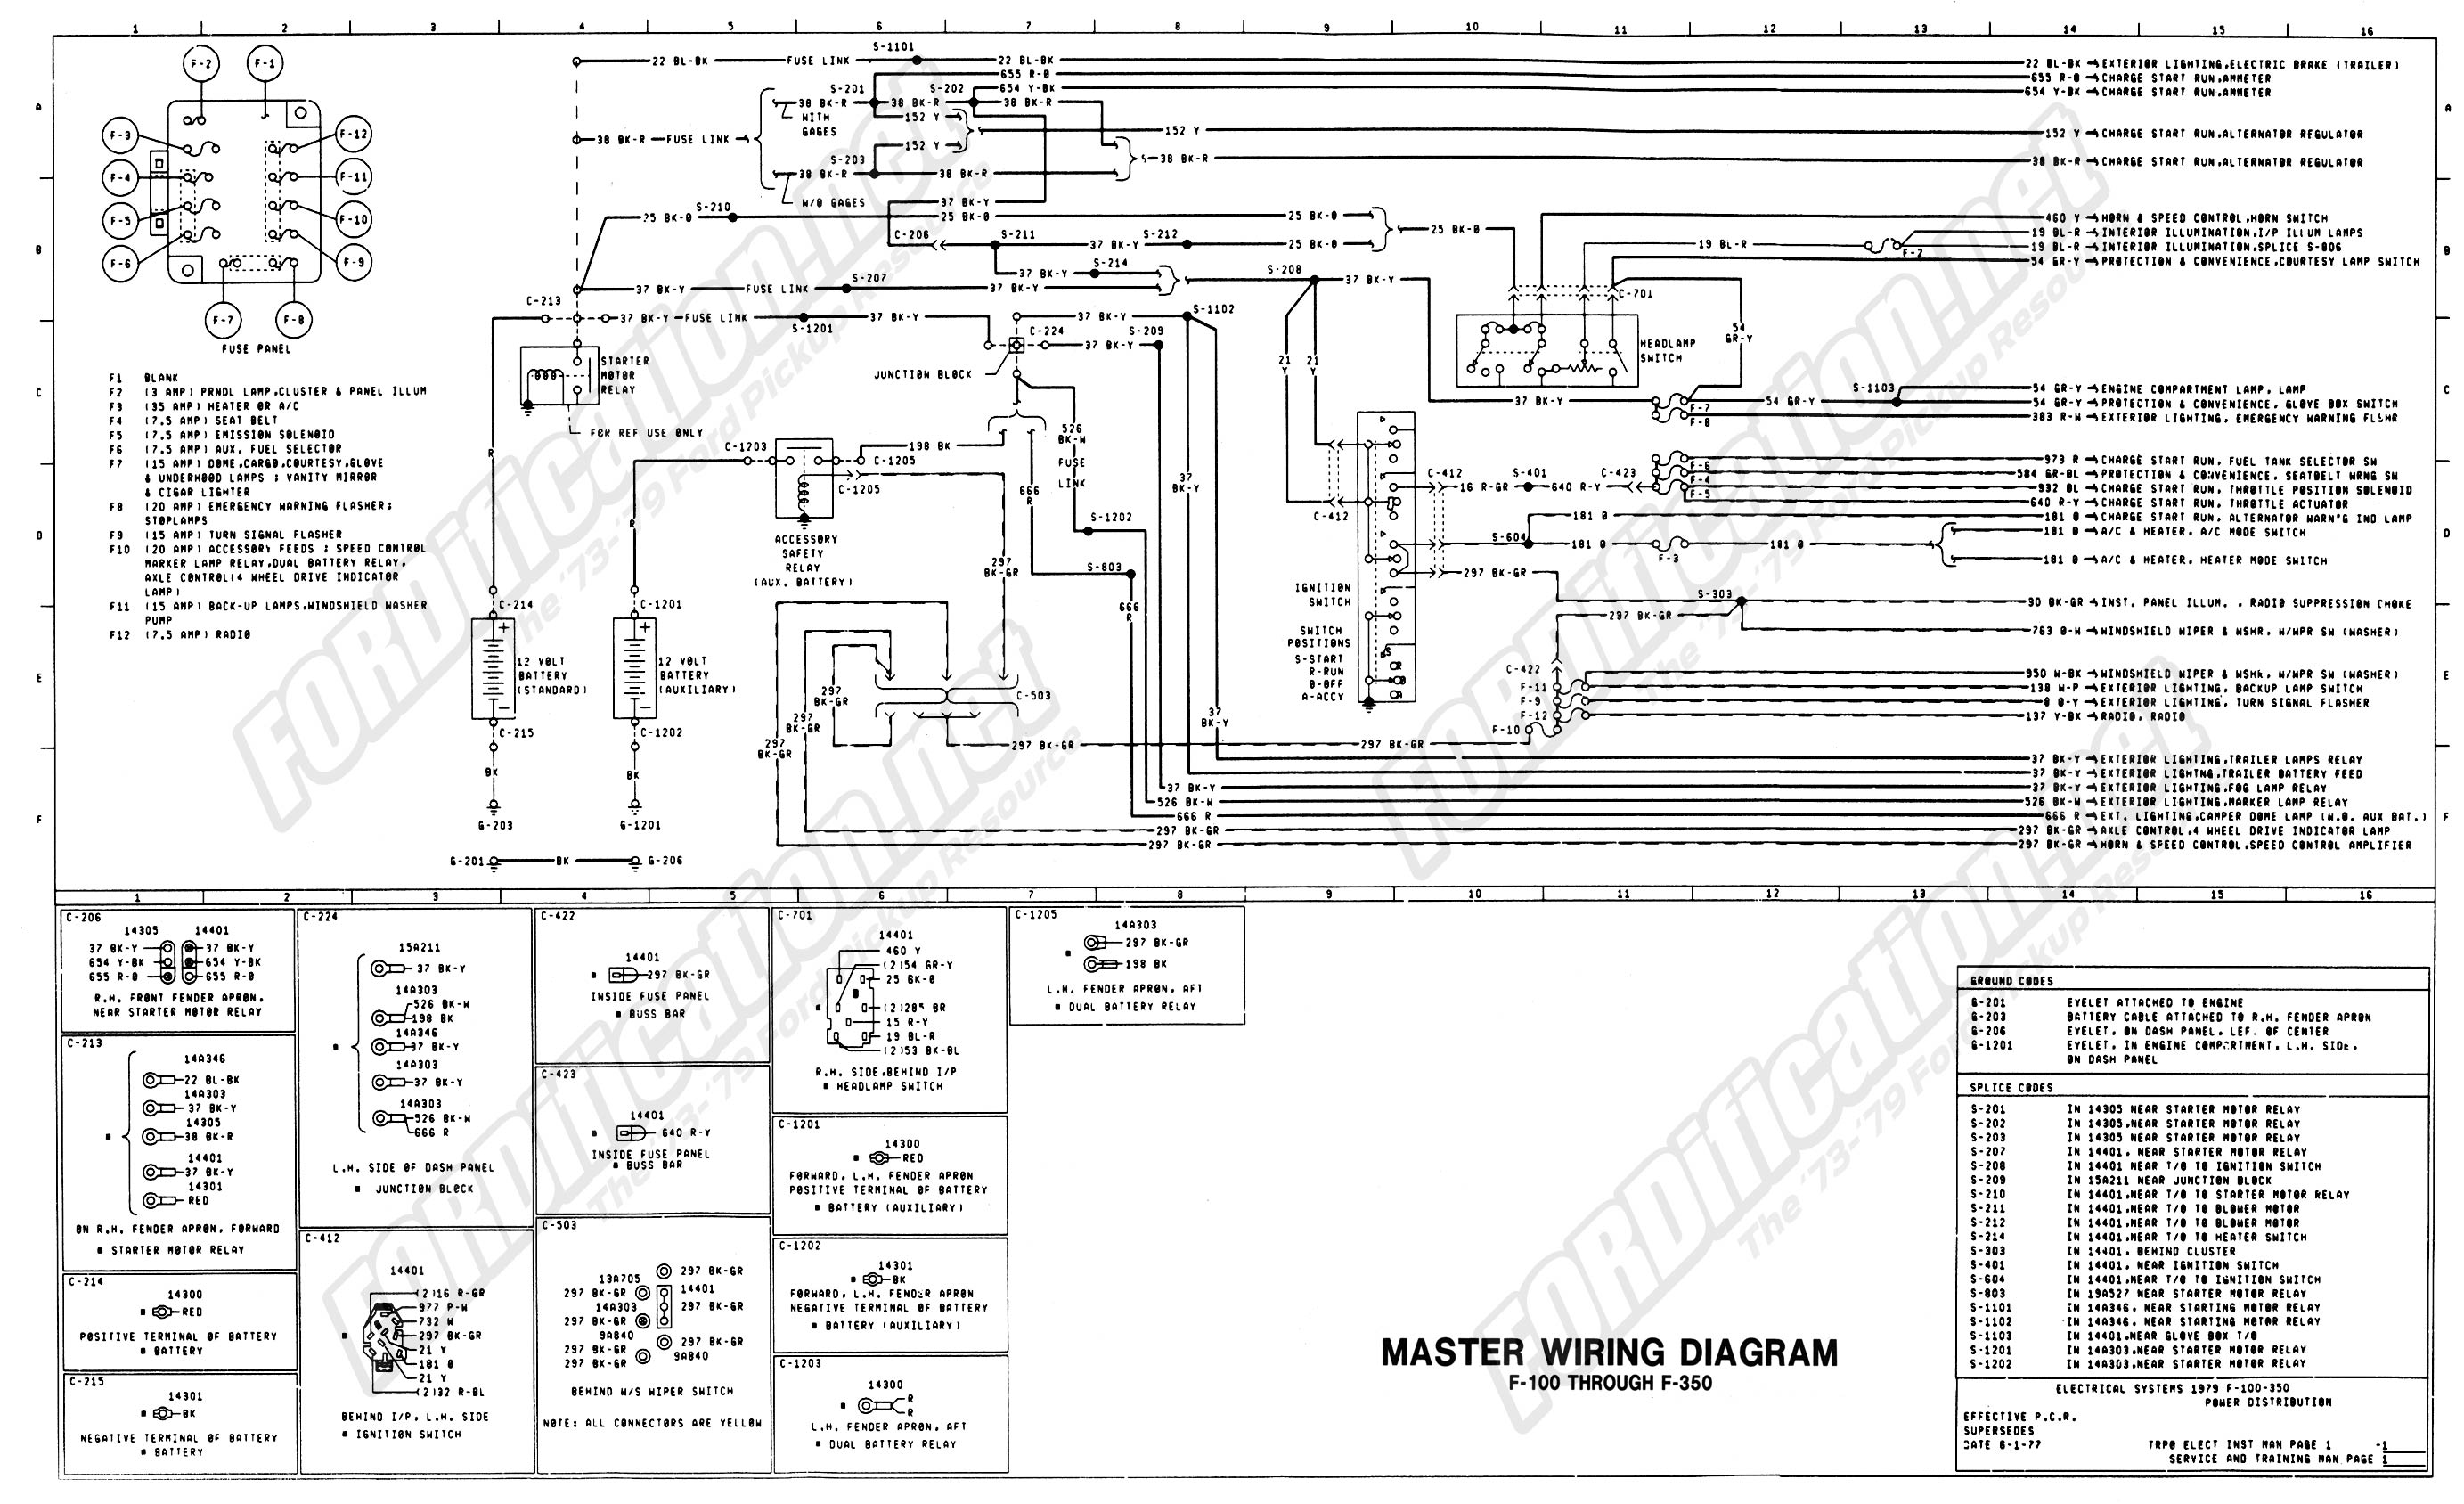 wiring_79master_1of9 1973 1979 ford truck wiring diagrams & schematics fordification net Ford Wiring Harness Diagrams at soozxer.org